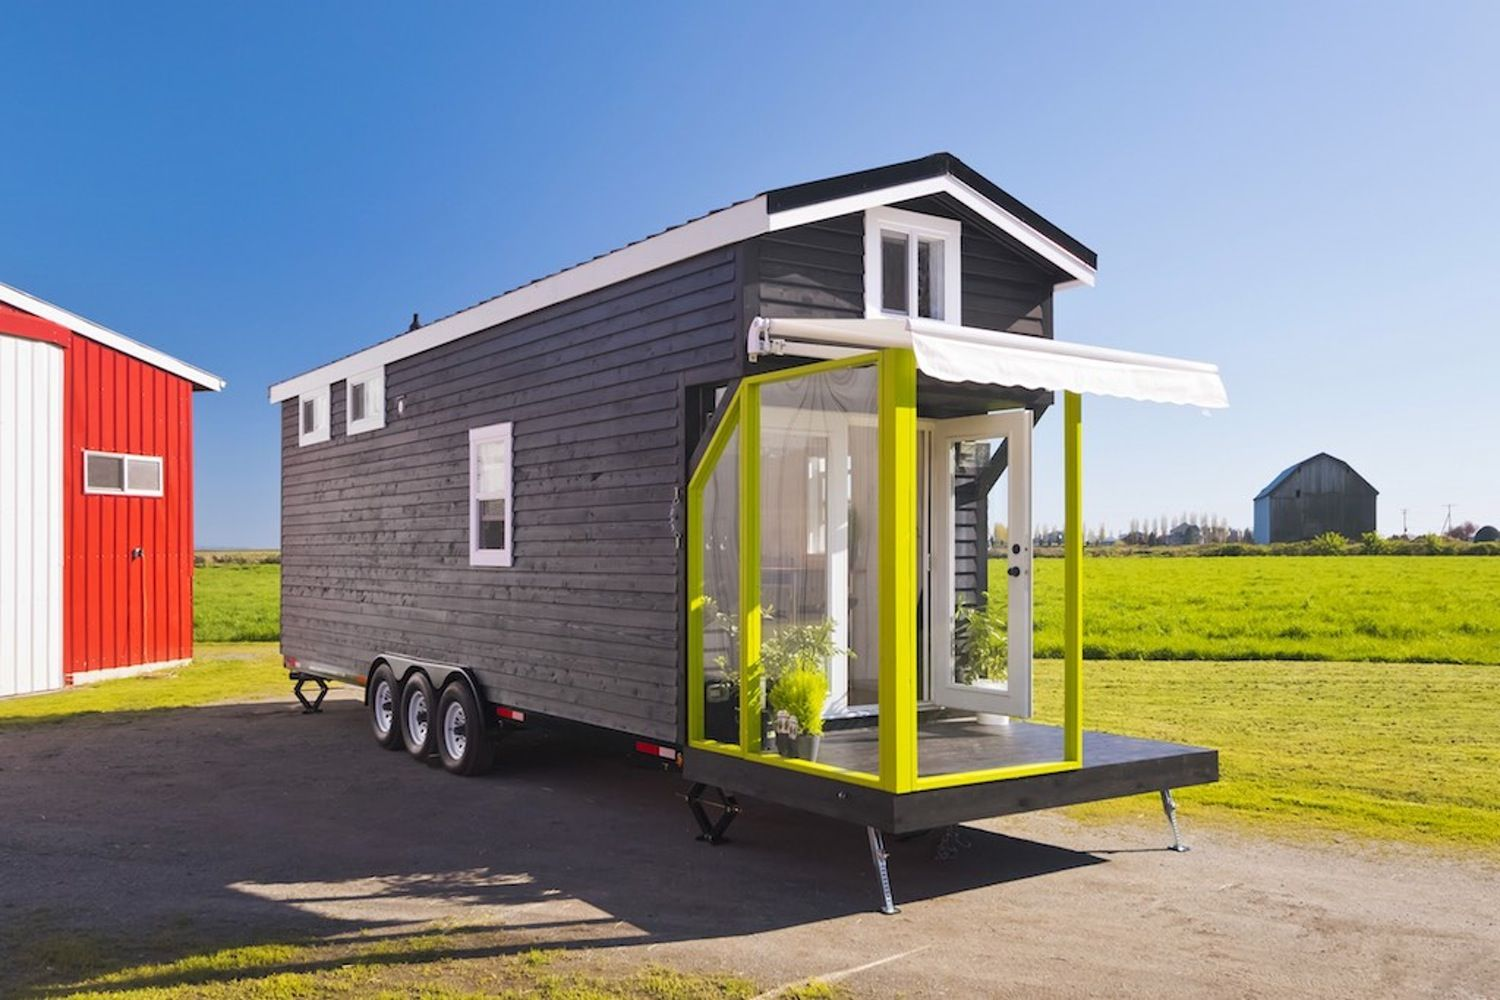 Curious How a 310 Square Foot Tiny House Can